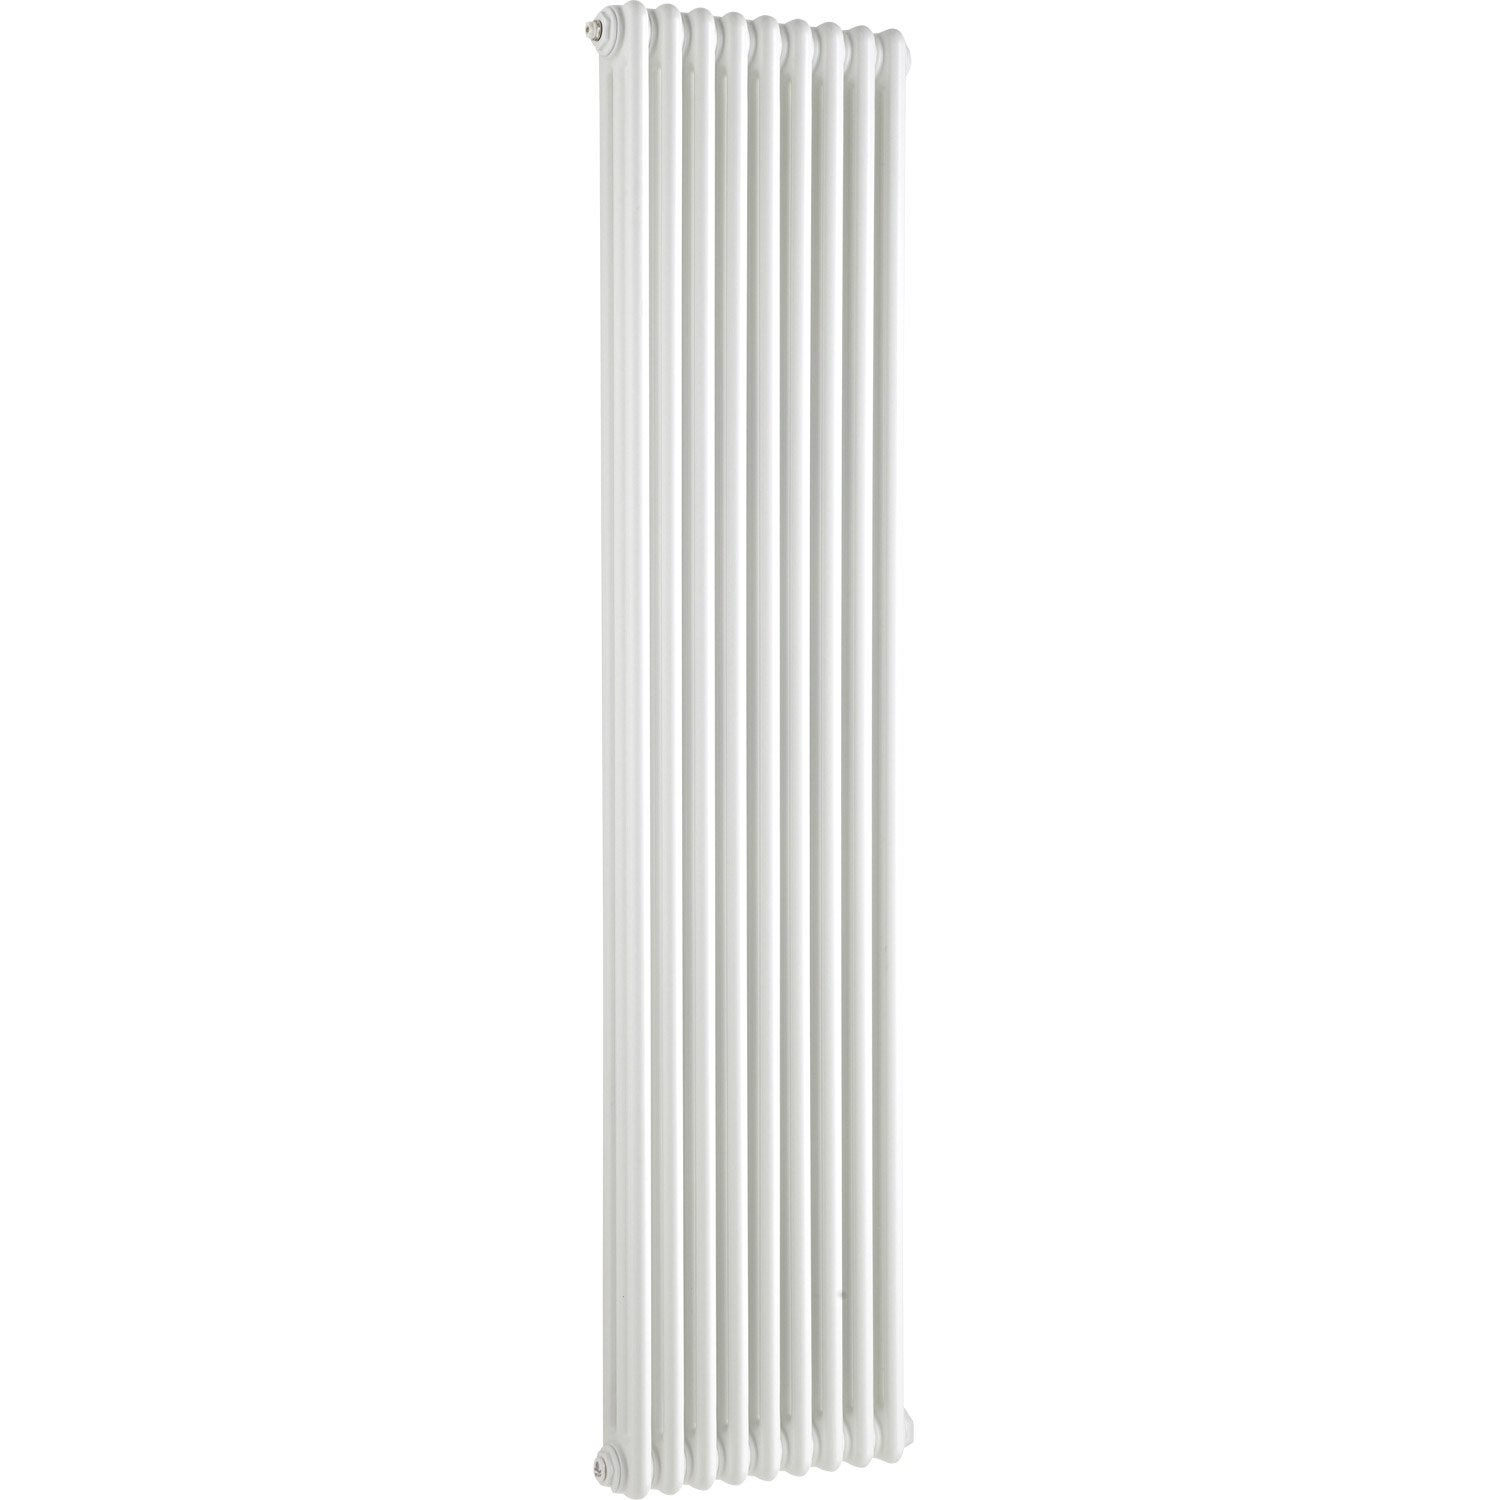 radiateur chauffage central tesi blanc cm 1520 w. Black Bedroom Furniture Sets. Home Design Ideas